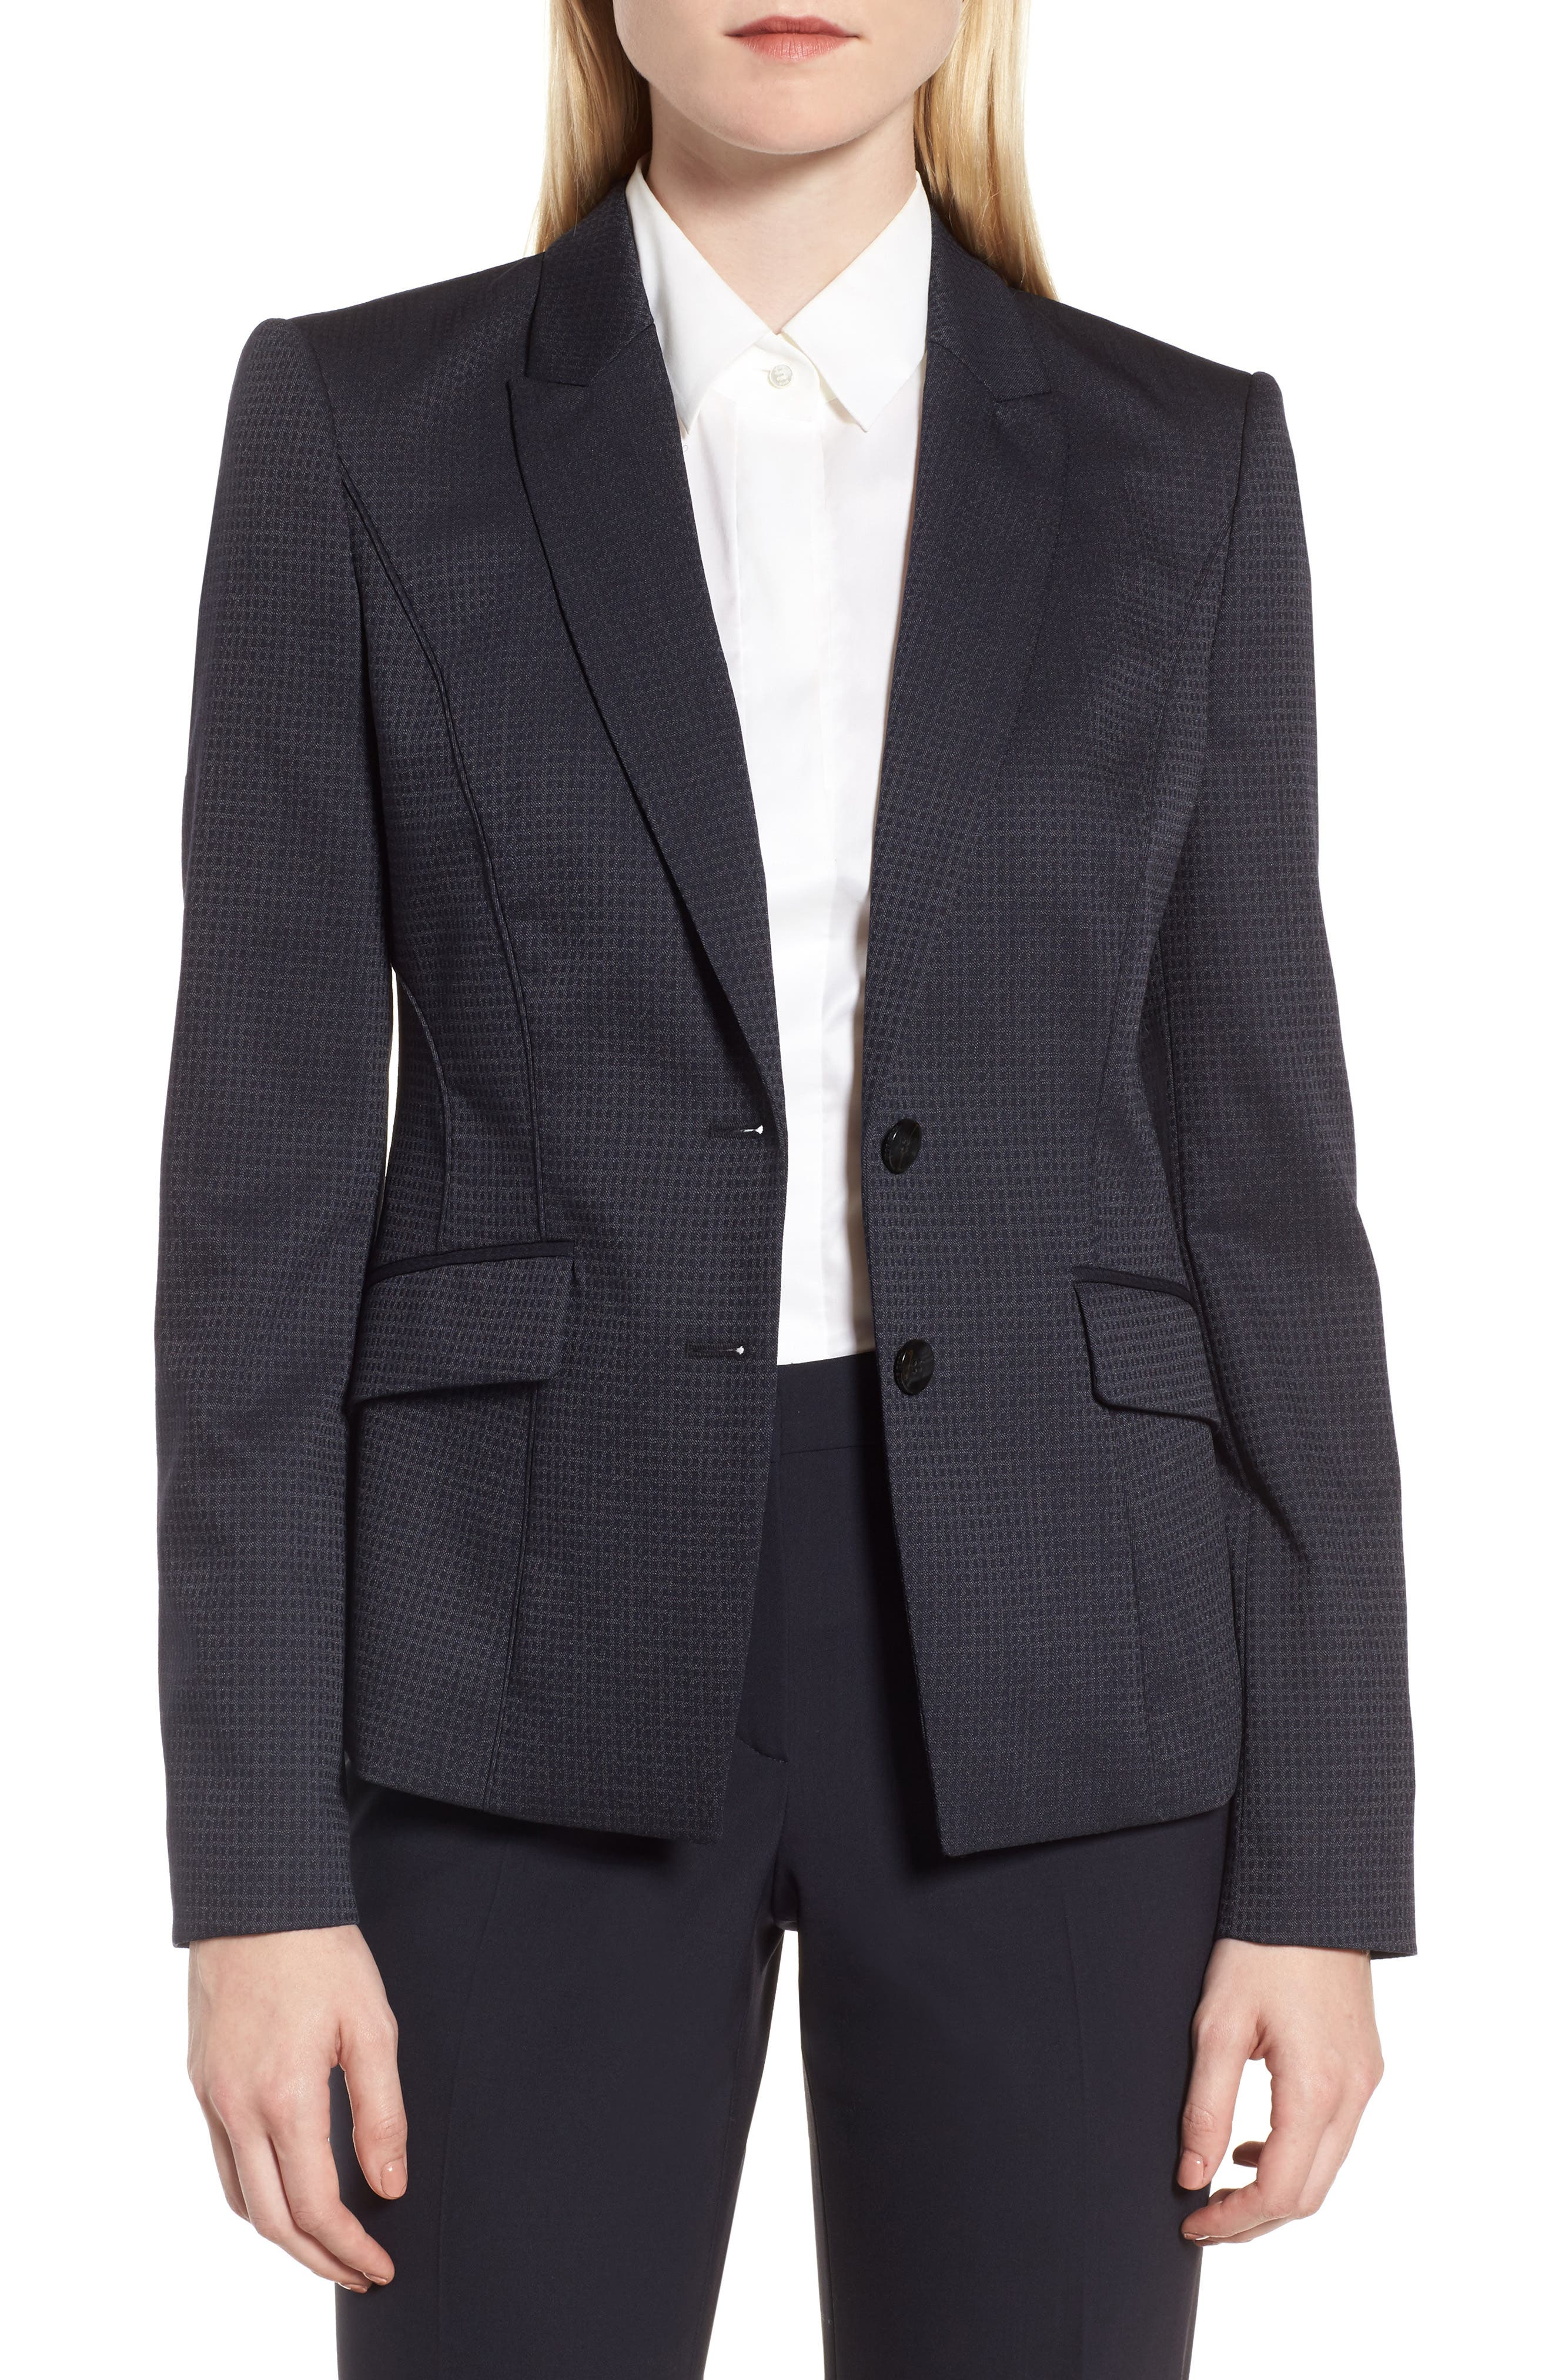 Jukani Check Wool Blend Suit Jacket,                             Main thumbnail 1, color,                             020